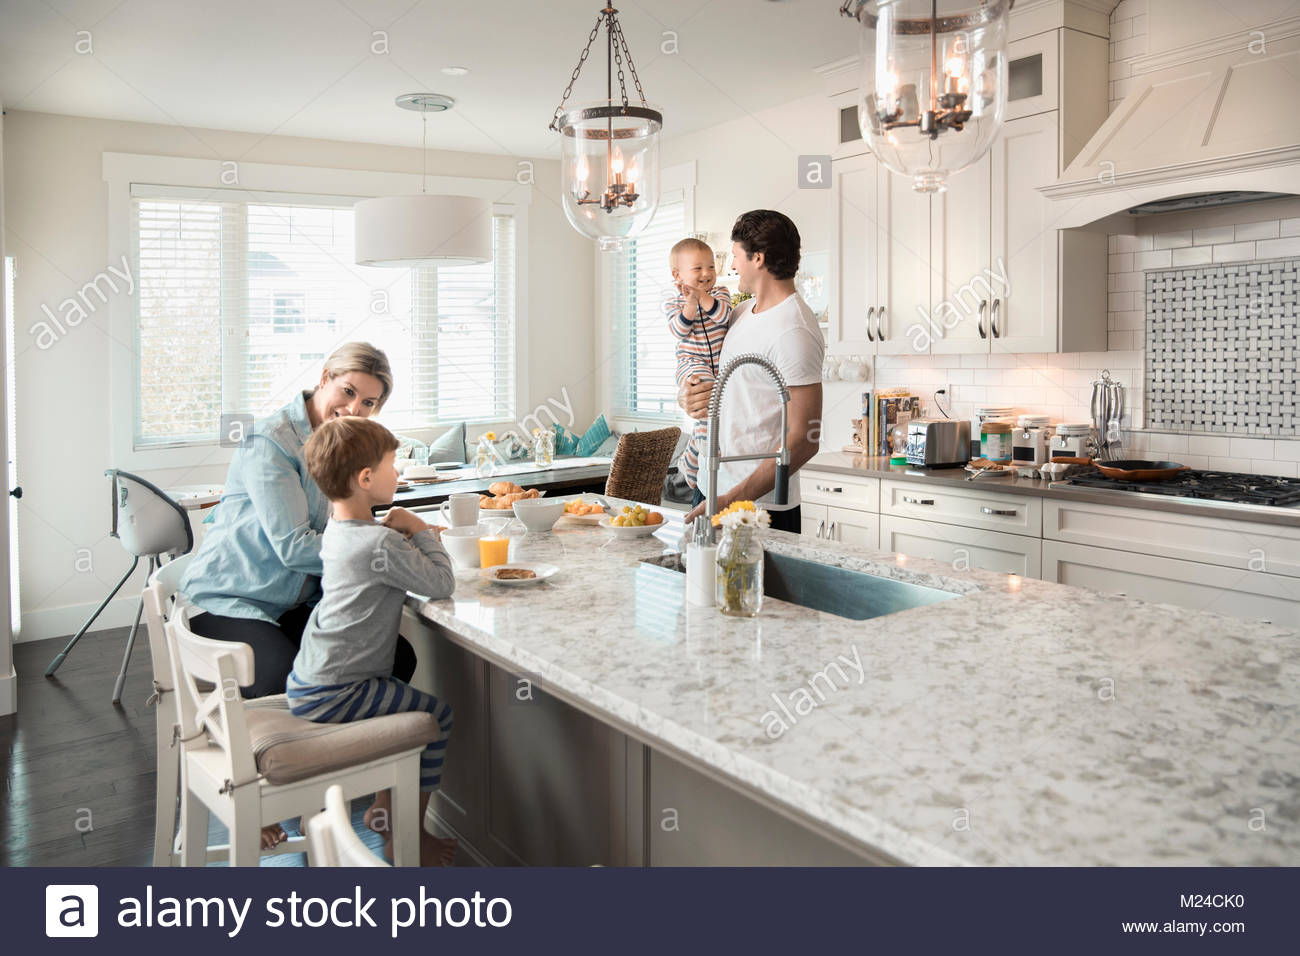 Family eating breakfast at kitchen island - Stock Image